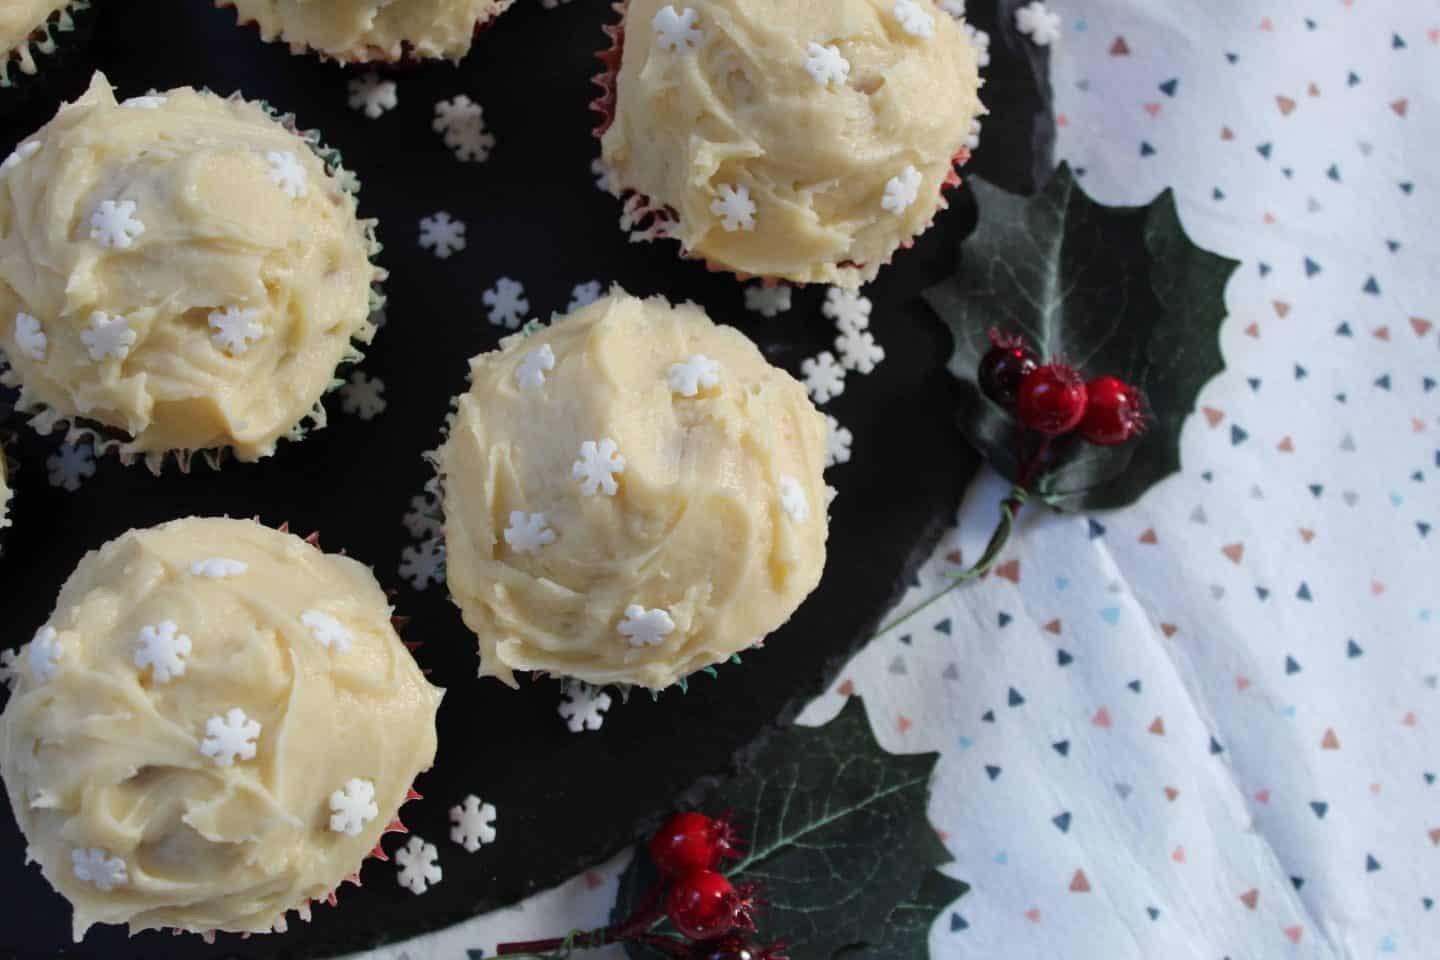 My deliciously decadent gluten free Baileys cupcakes